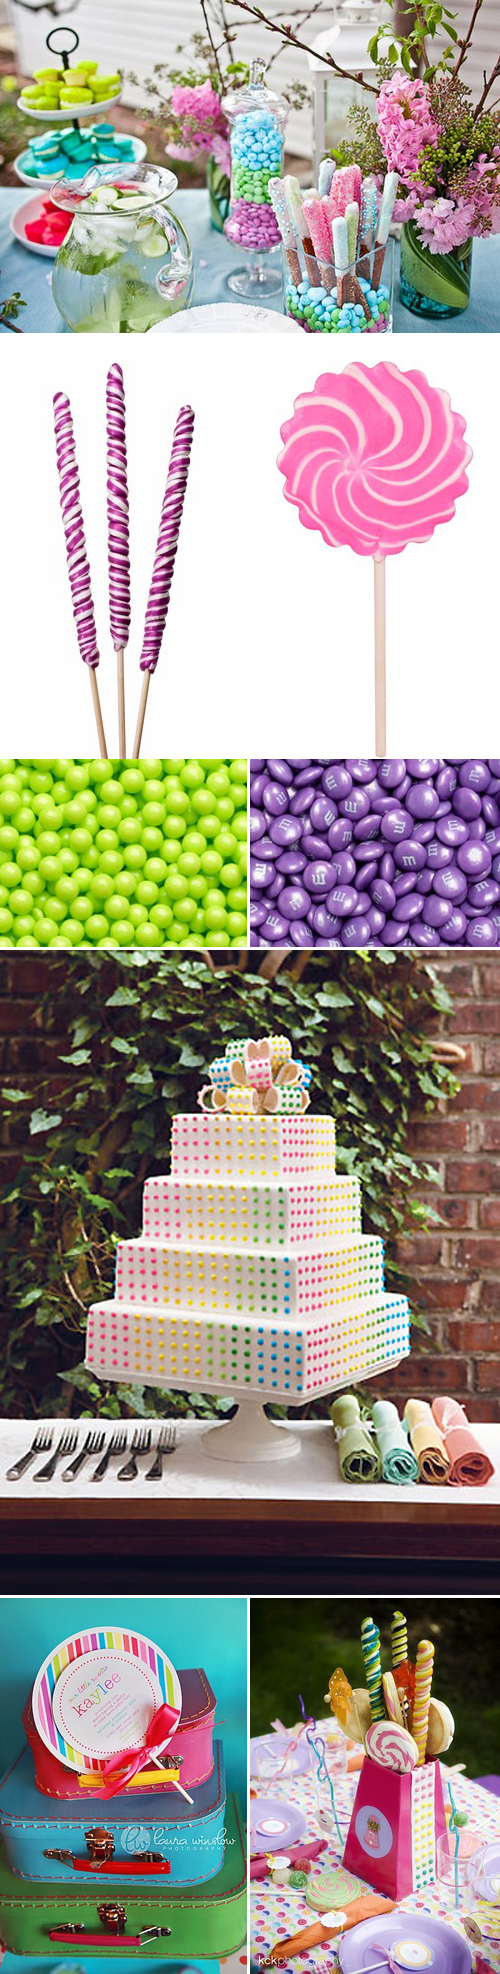 Sweet Candy Party Inspiration Board Ideas